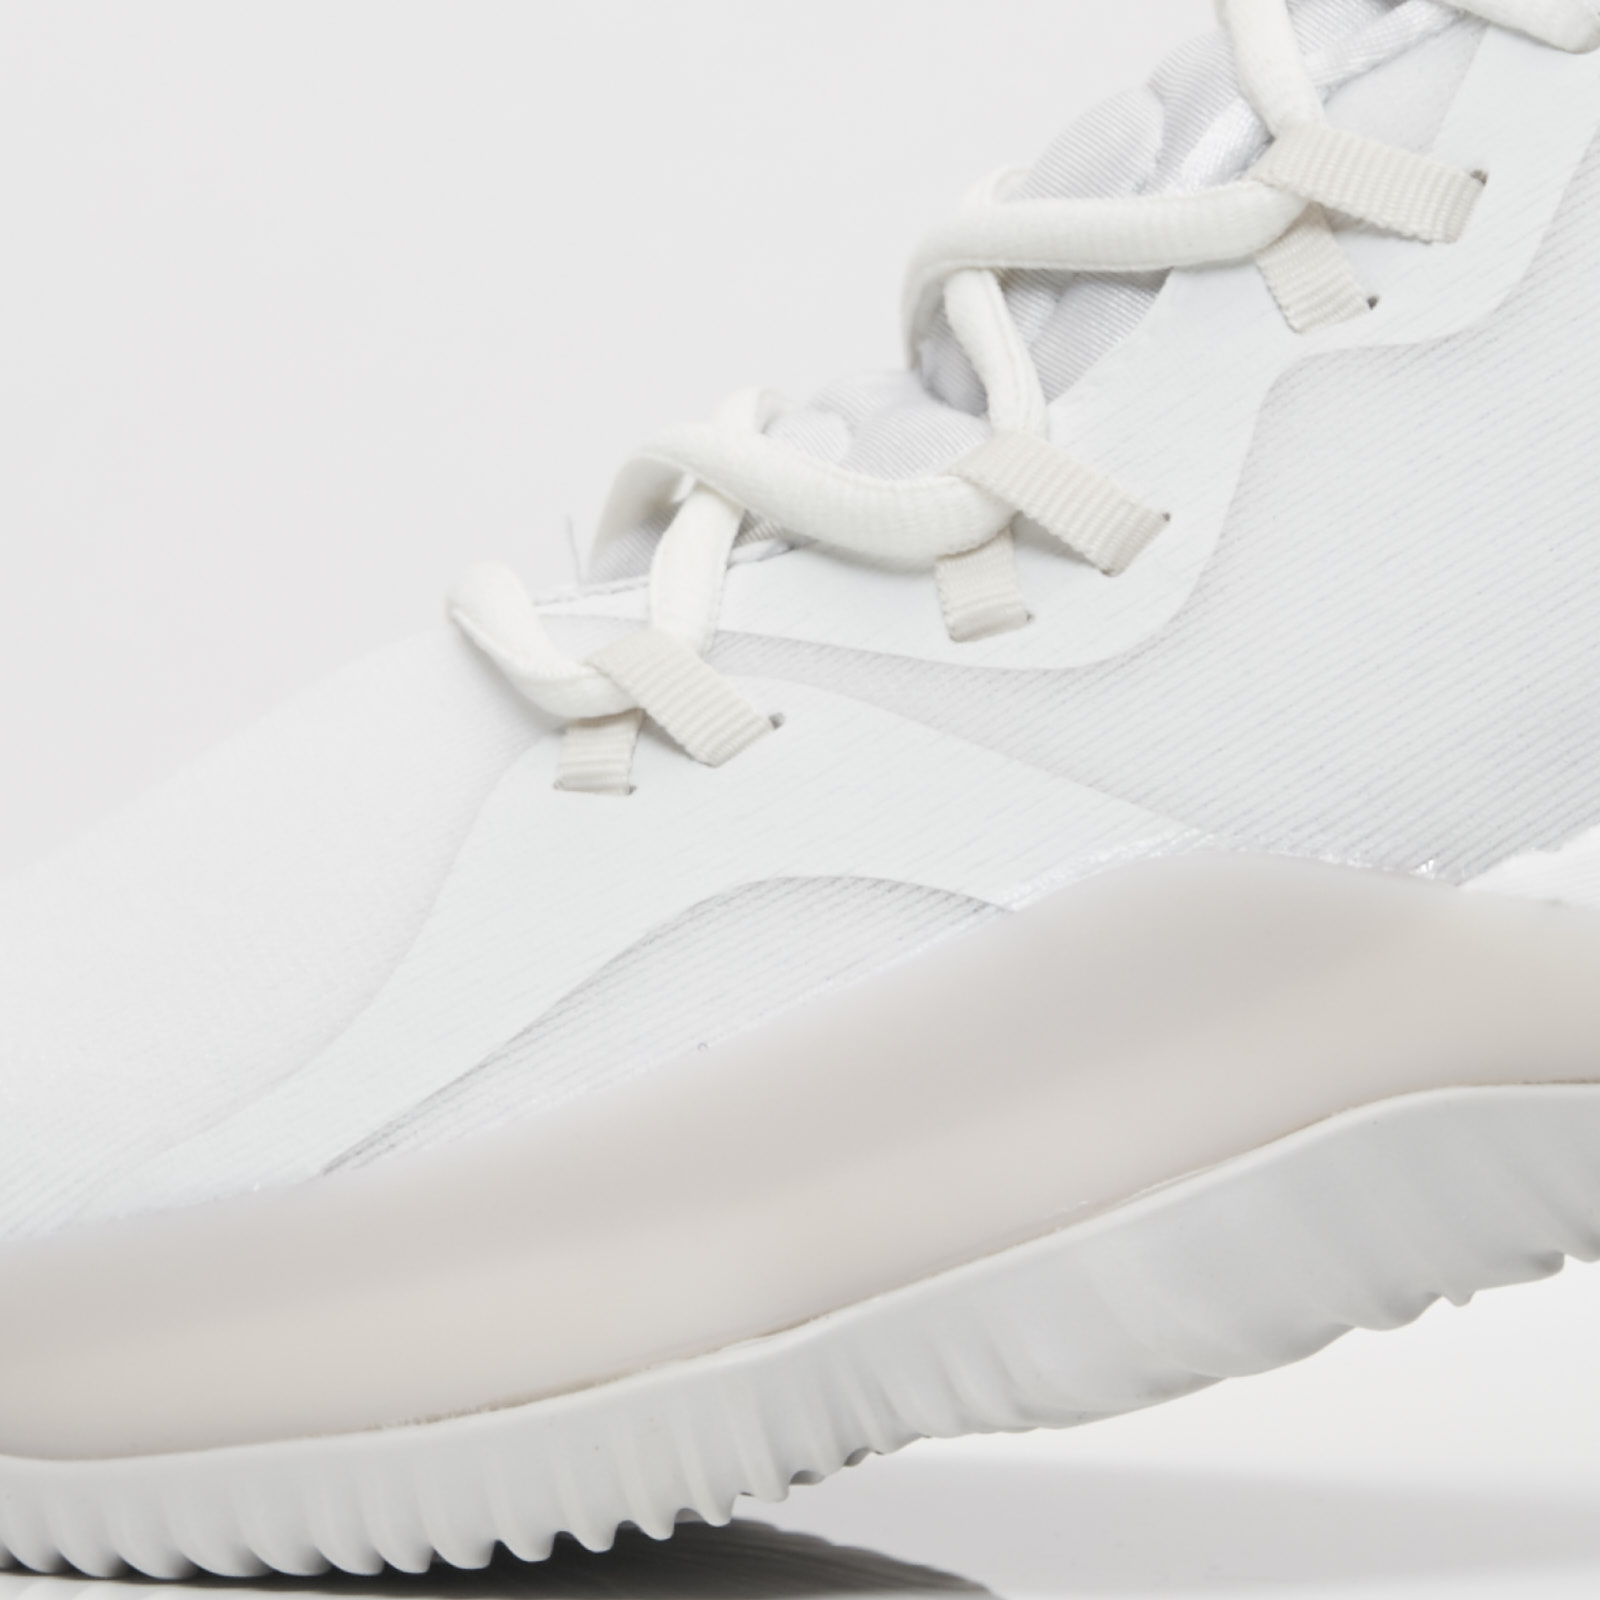 2b03afa0d14 adidas Crazy Light Boost 2 - Db1072 - Sneakersnstuff